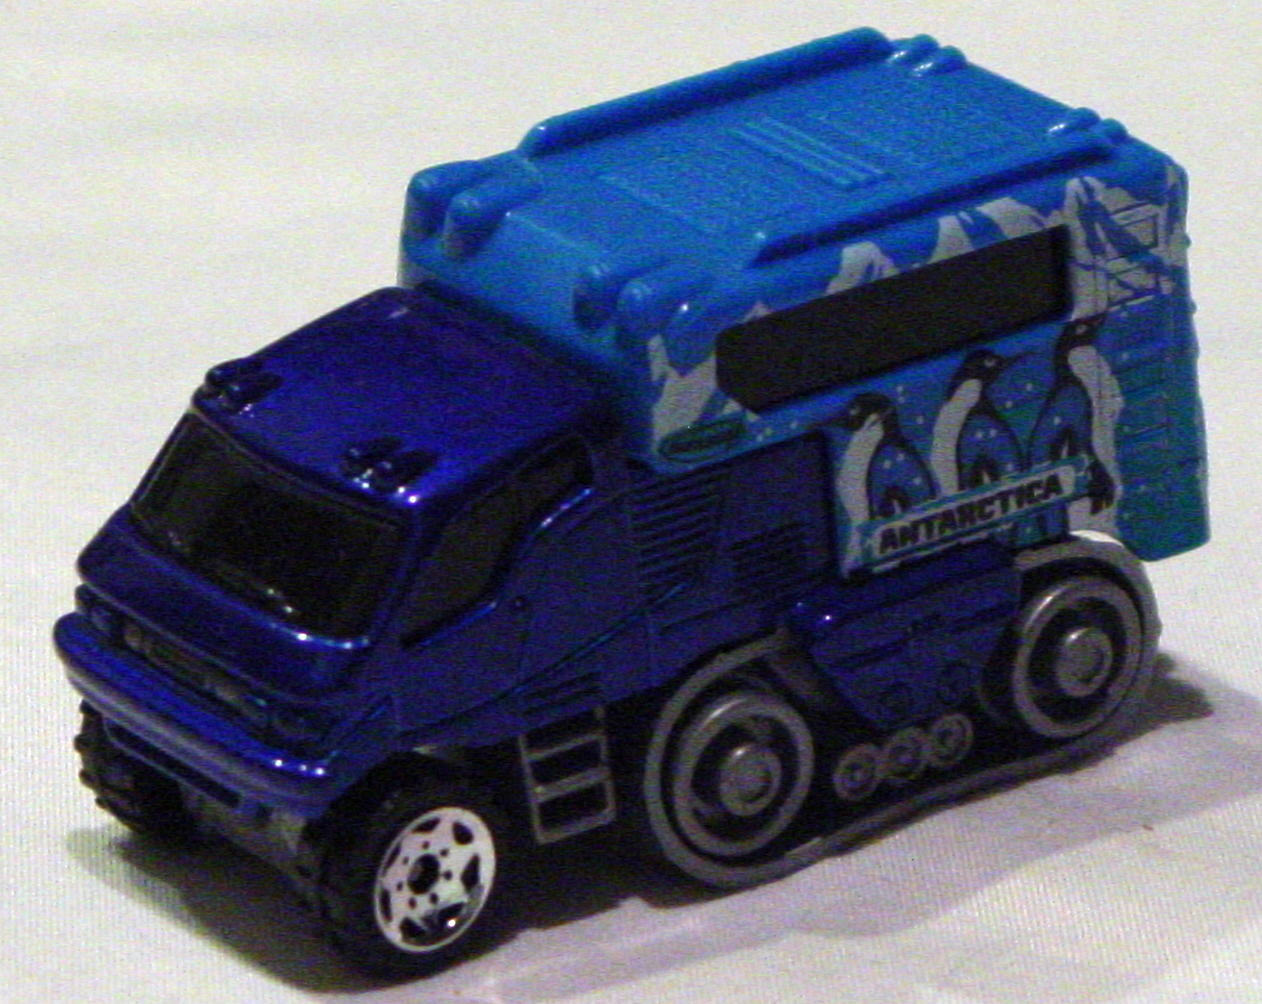 Offshore SuperFast 06 I 12 - Arctic Track Truck dark Blue Antarctica sawblade made in China